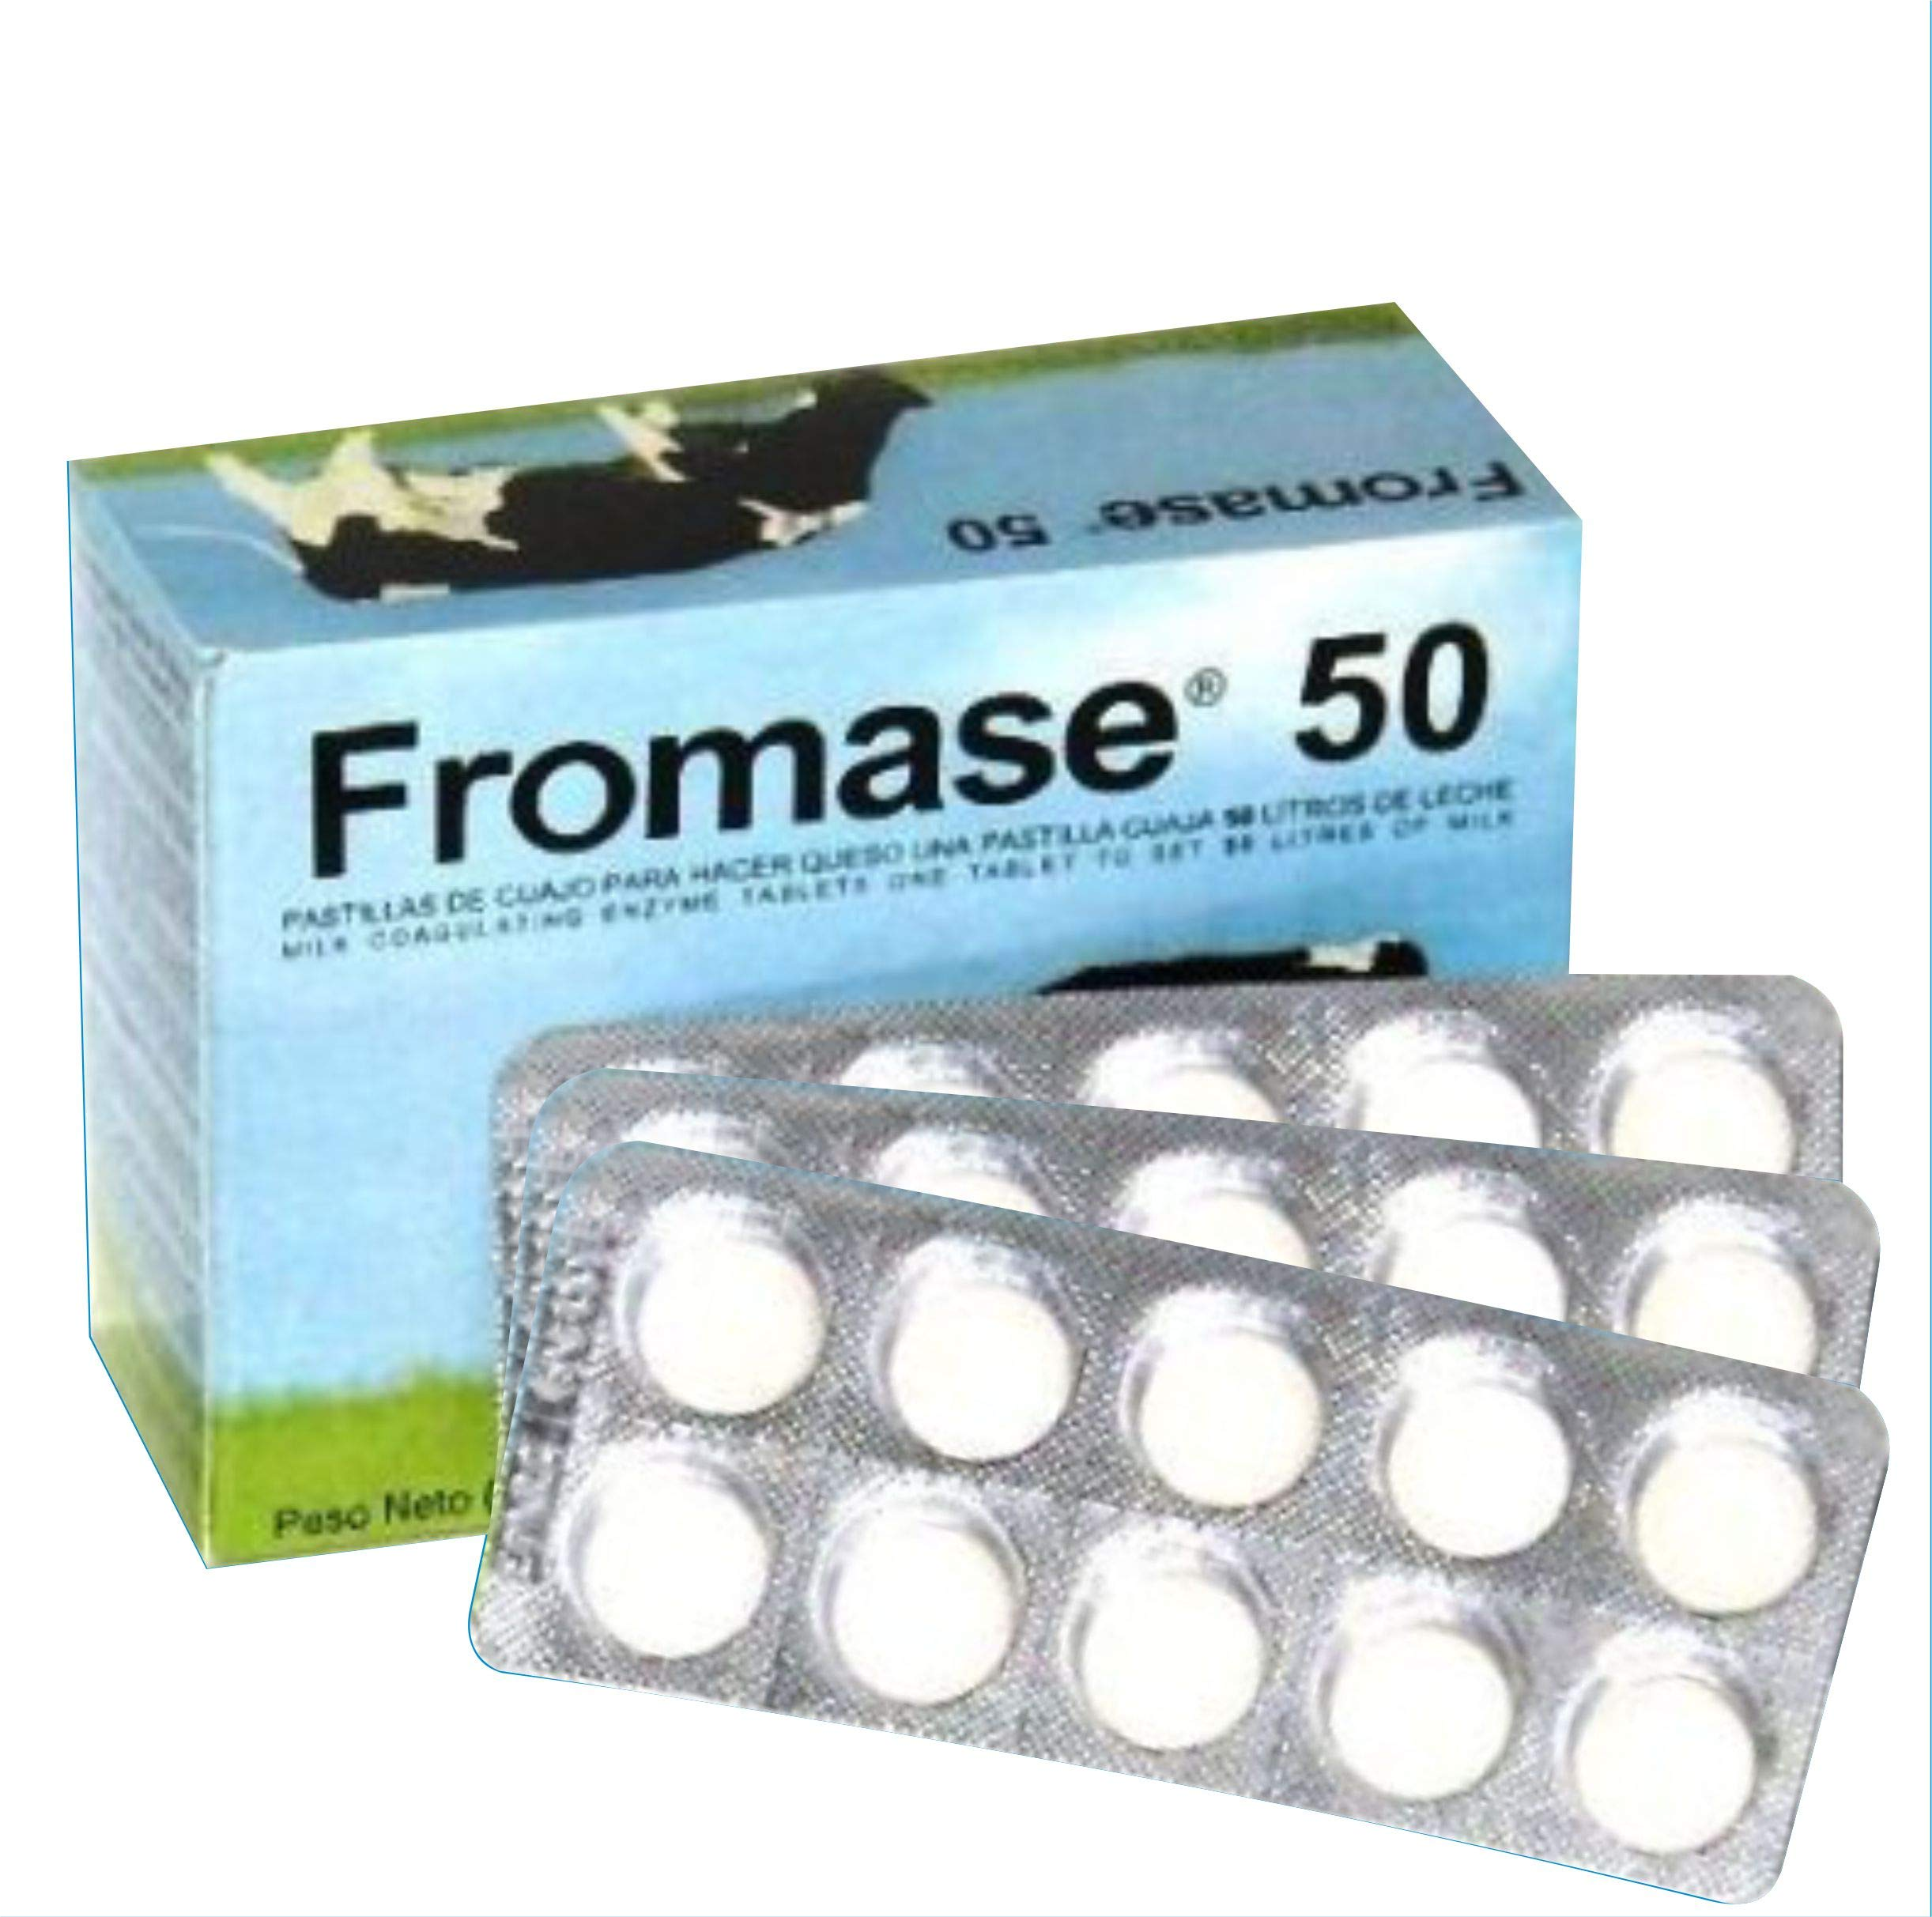 RENNET TABLETS/Fromase 50/30 TABLETS / 30 PASTILLAS / 30 TABLETTES Made in France